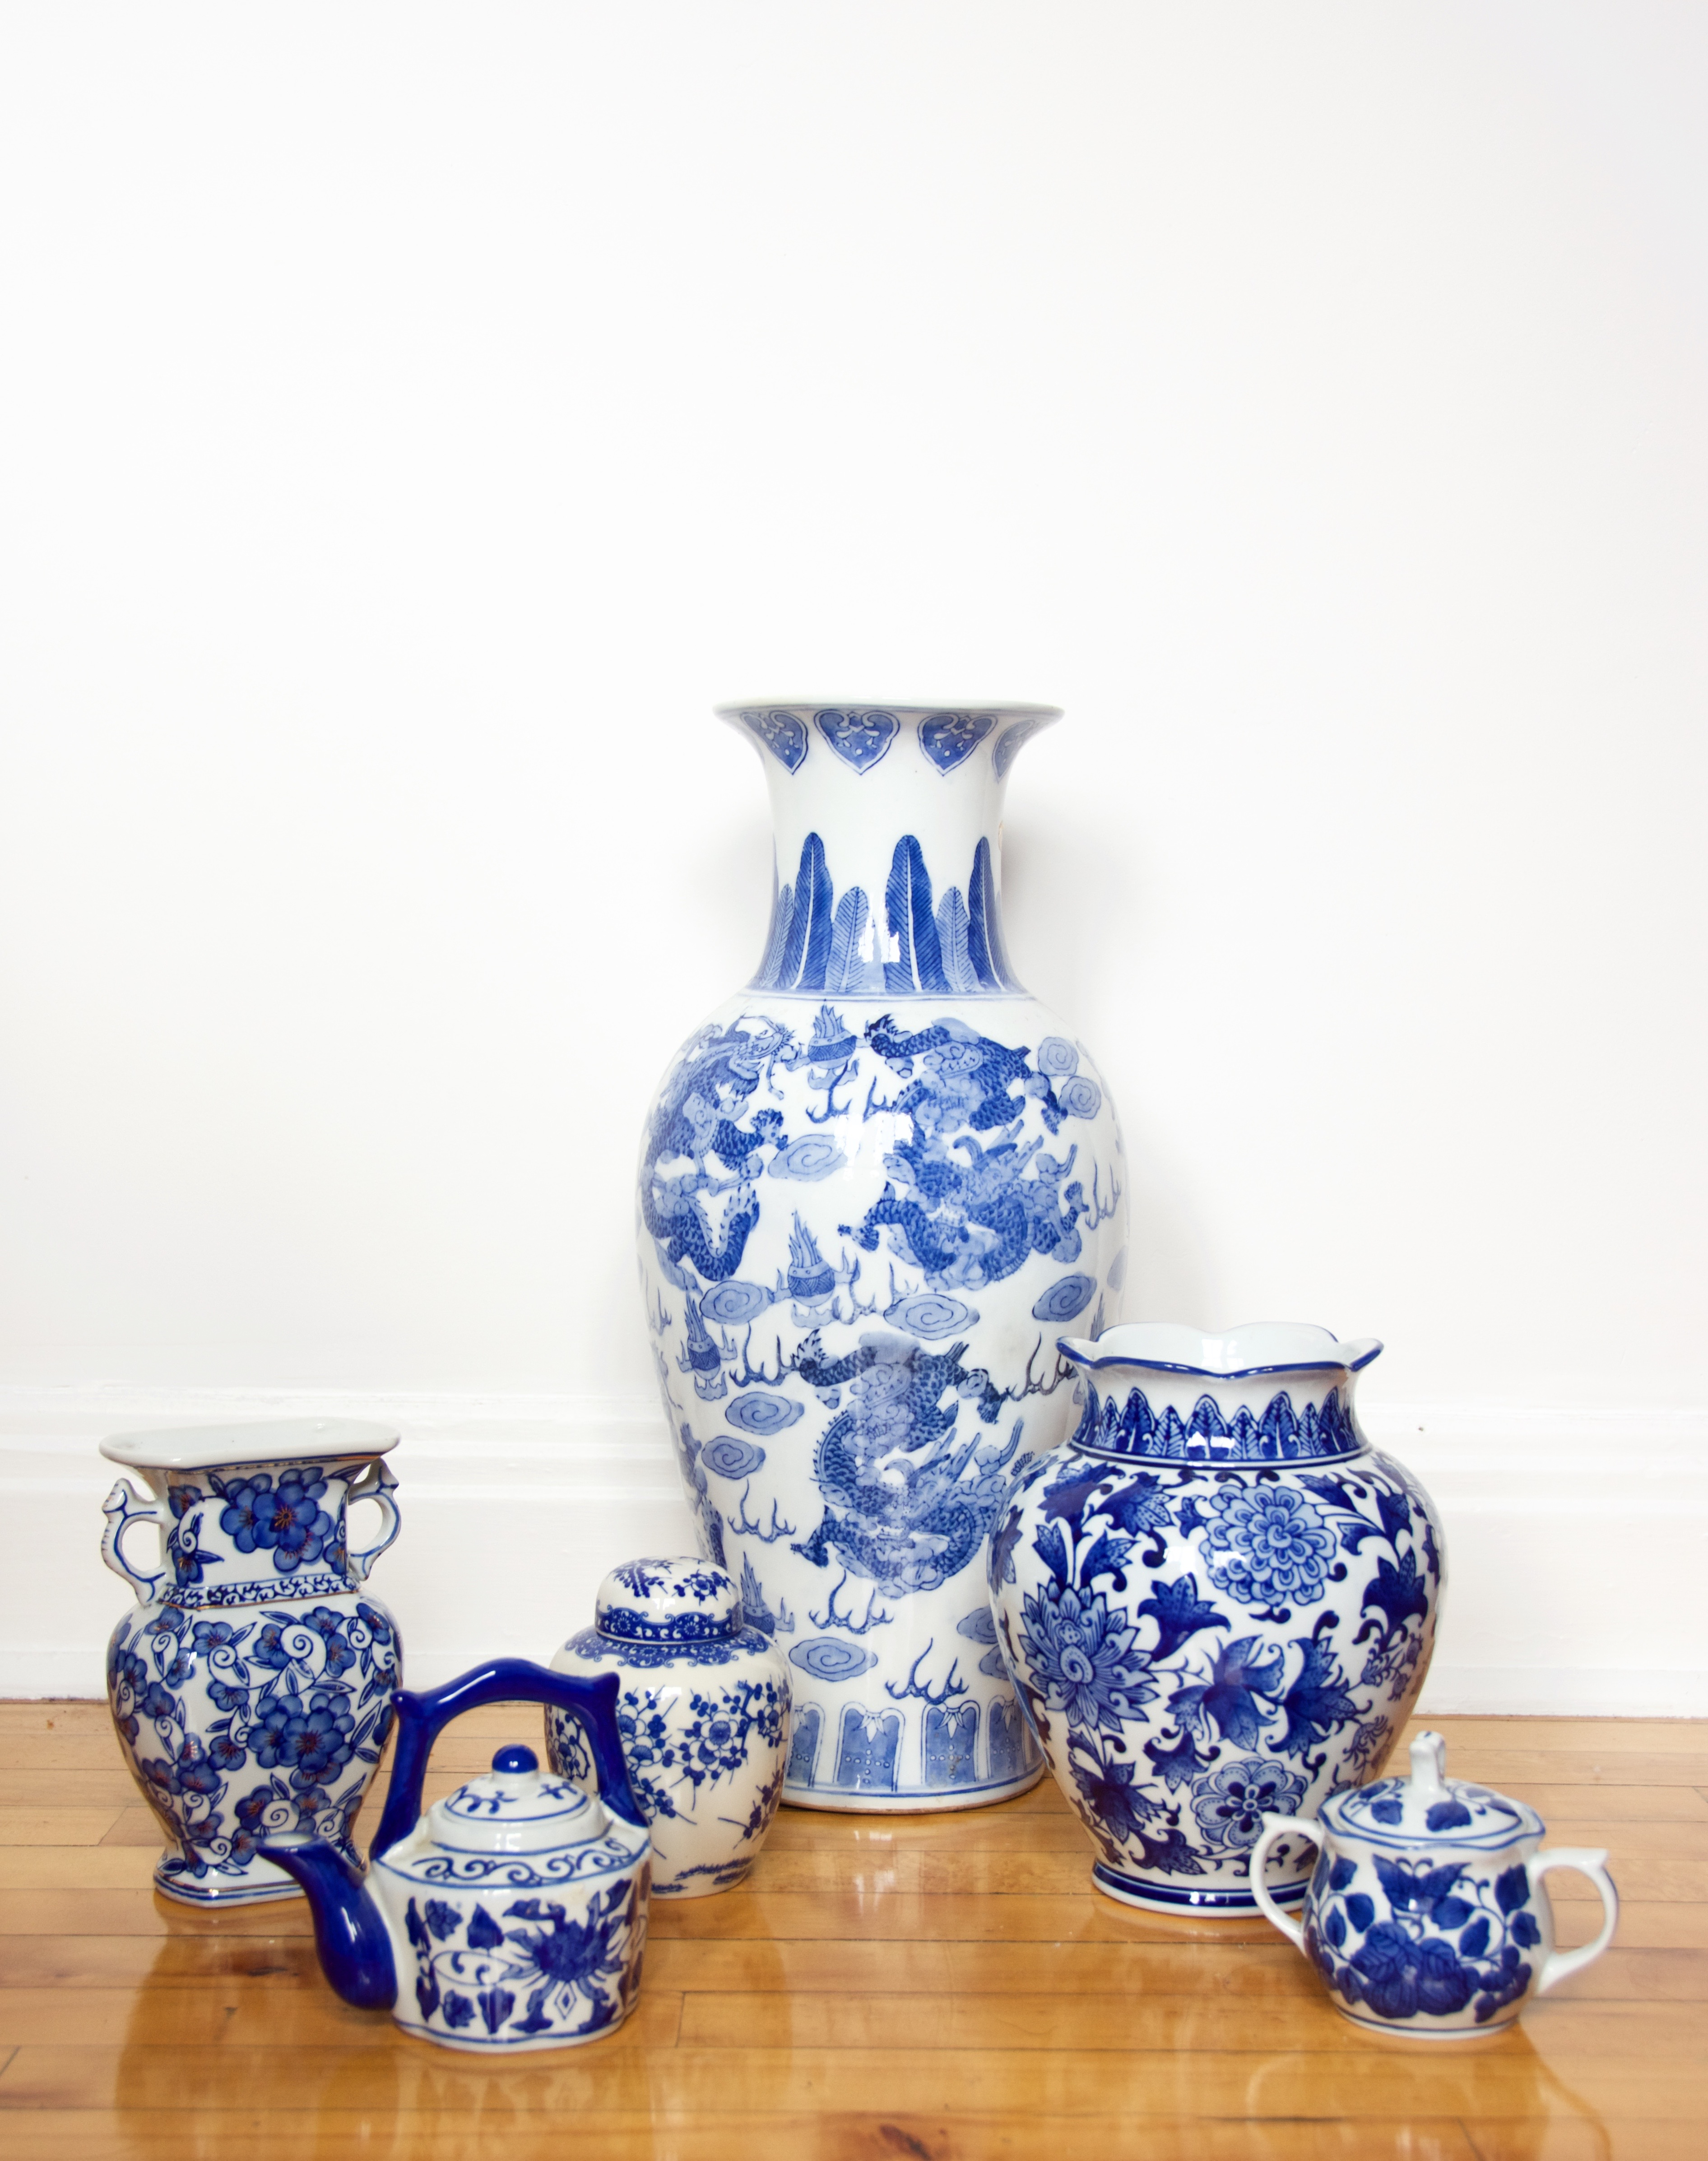 blue and white china porcelain pottery vase jar chinoiserie 3 (1)